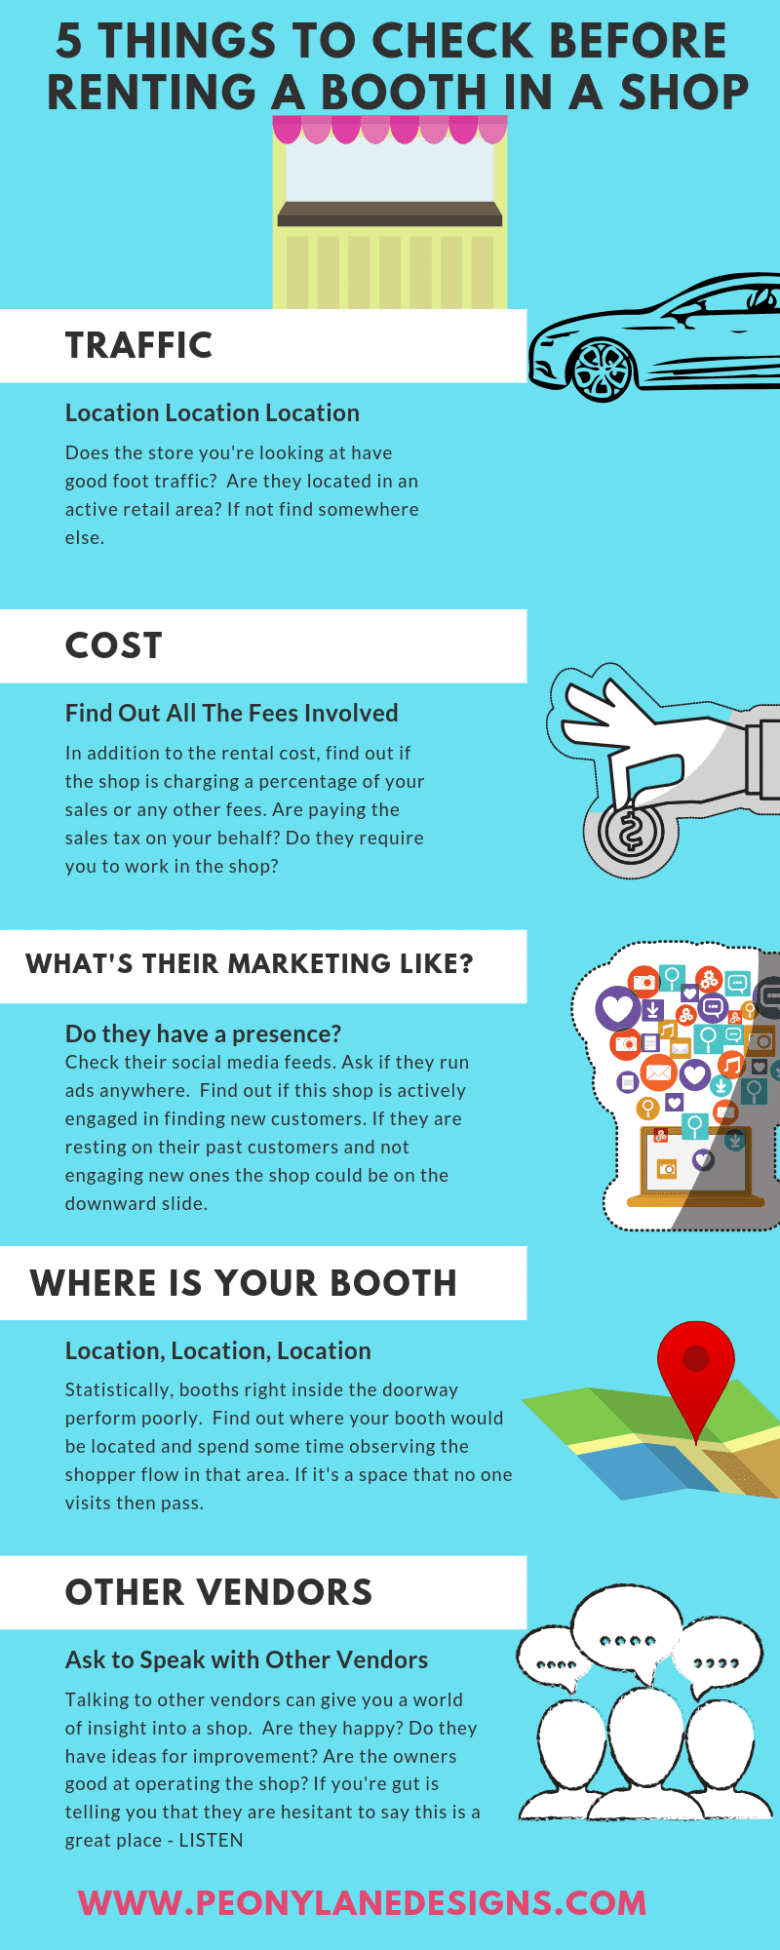 5 Things To Check Before Renting a Booth in a Shop